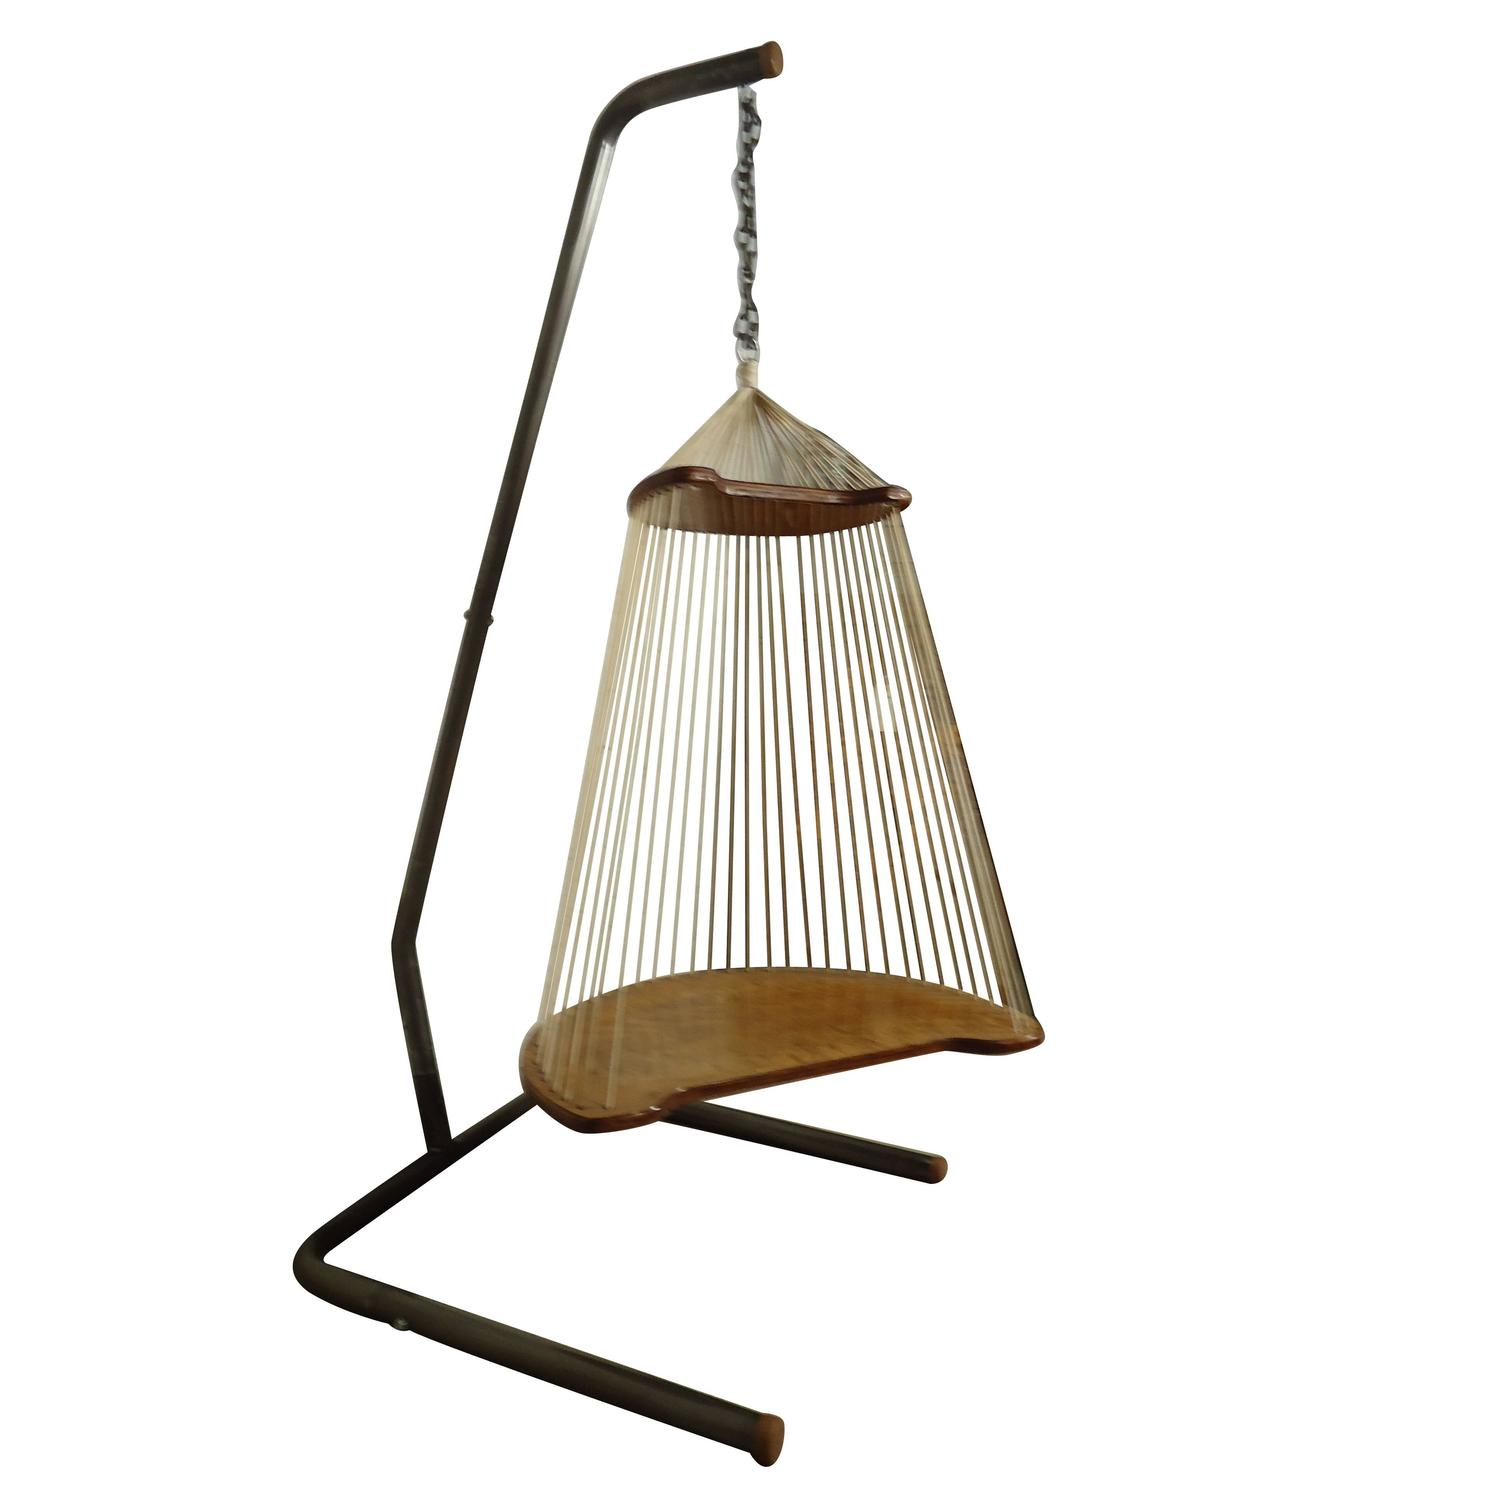 Unique Mid Century Modern Hardwood And Rope Swing Chair At 1stdibs